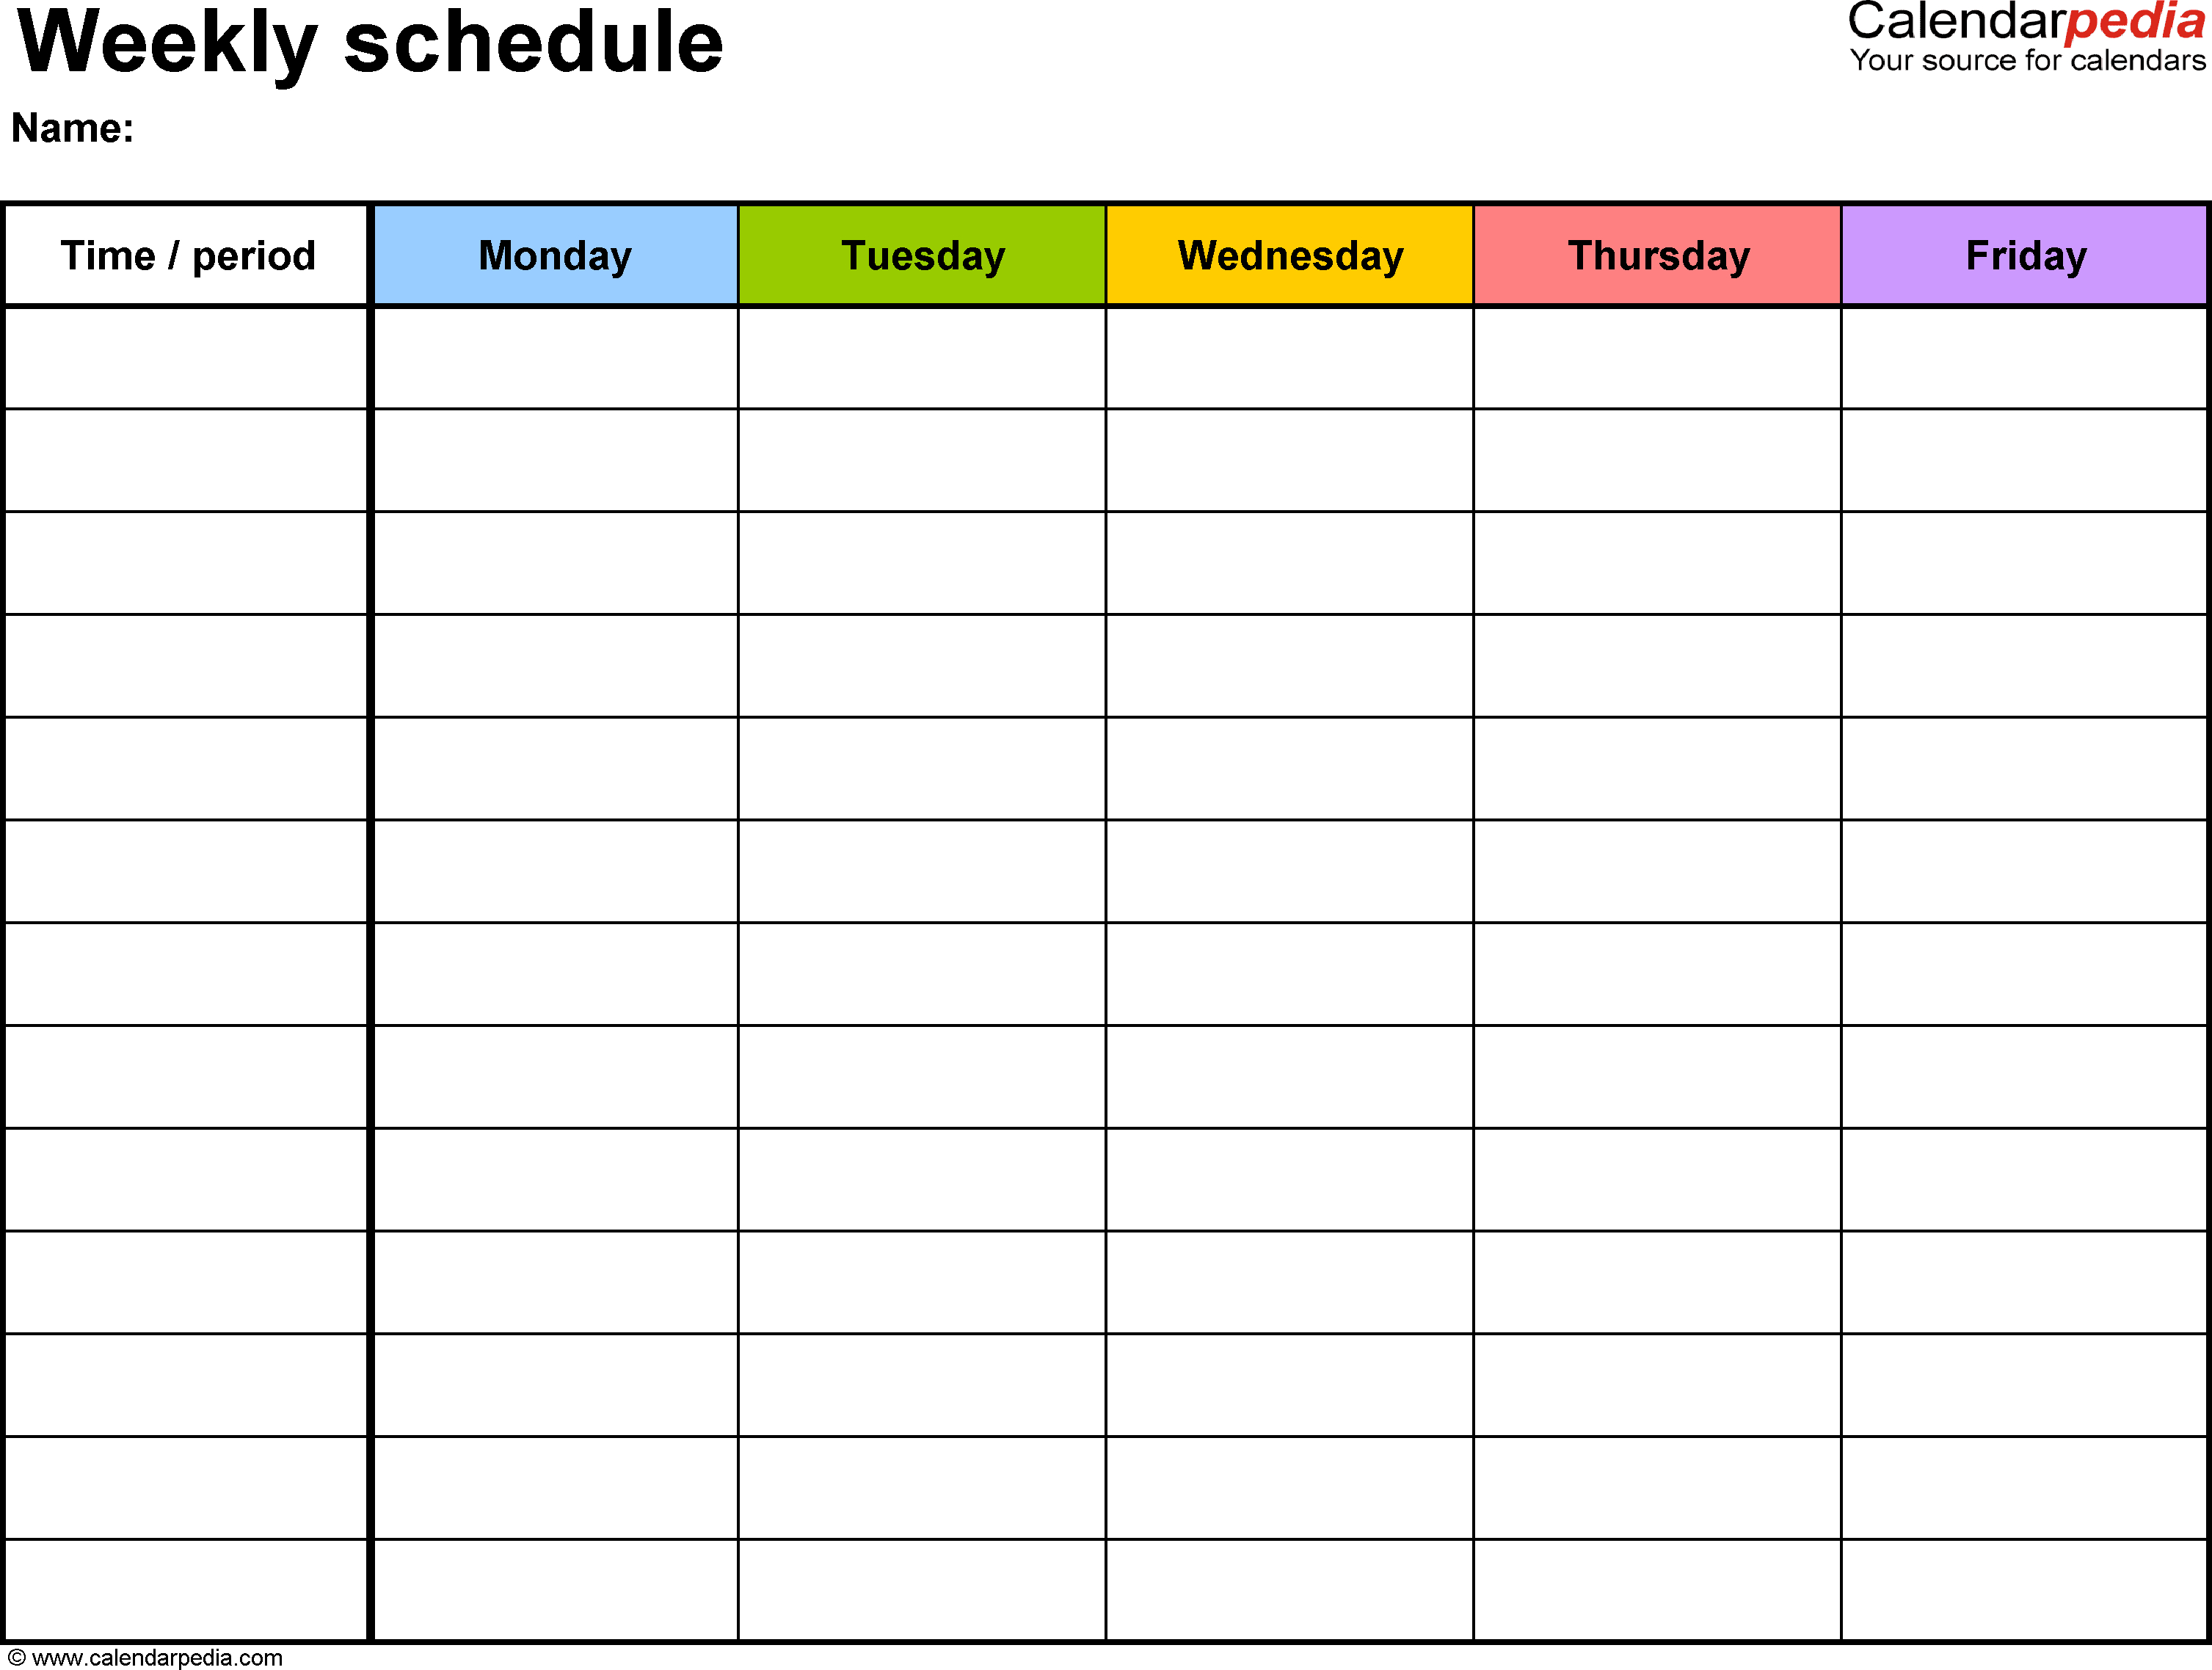 Free Weekly Schedule Templates For Excel - 18 Templates With Employee Weekly Schedule Template Excel